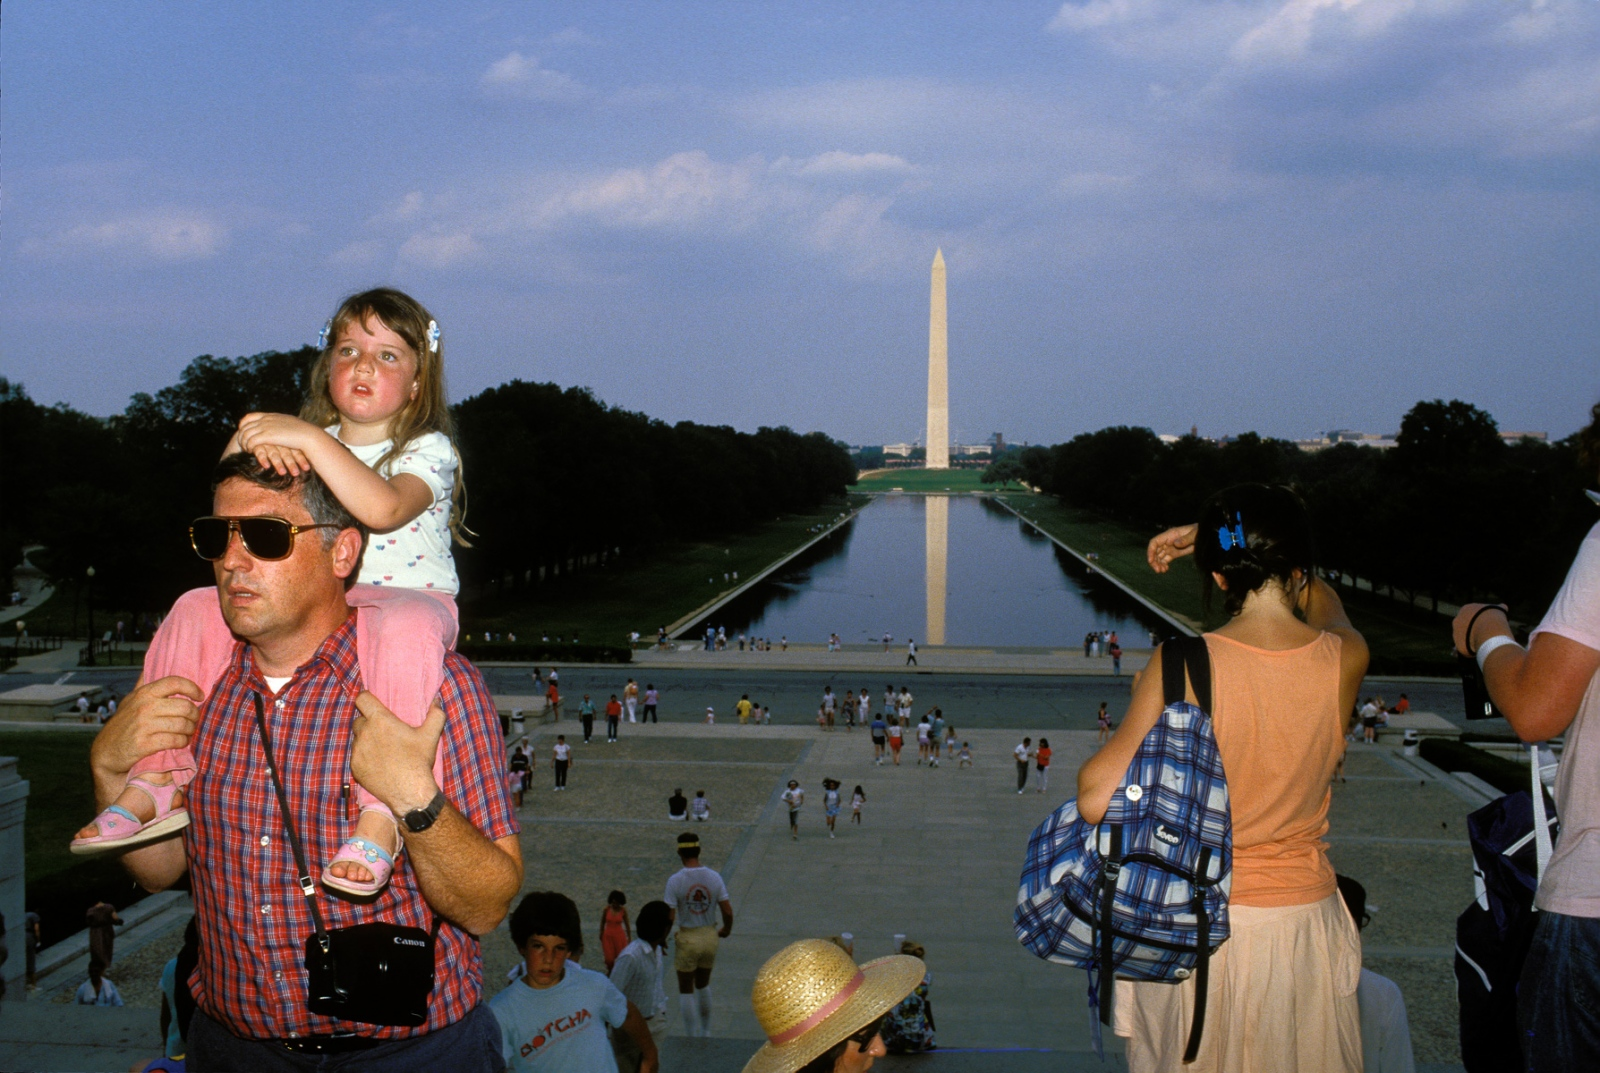 The Washington Monument as it currently exists is actually a massive failure in comparison to the ambitious original design, which had called for a series of columns and statues of George Washington and 30 other figures from the Revolutionary War. Only the tower itself, composed of Maryland marble, was completed due to budgetary reasons.